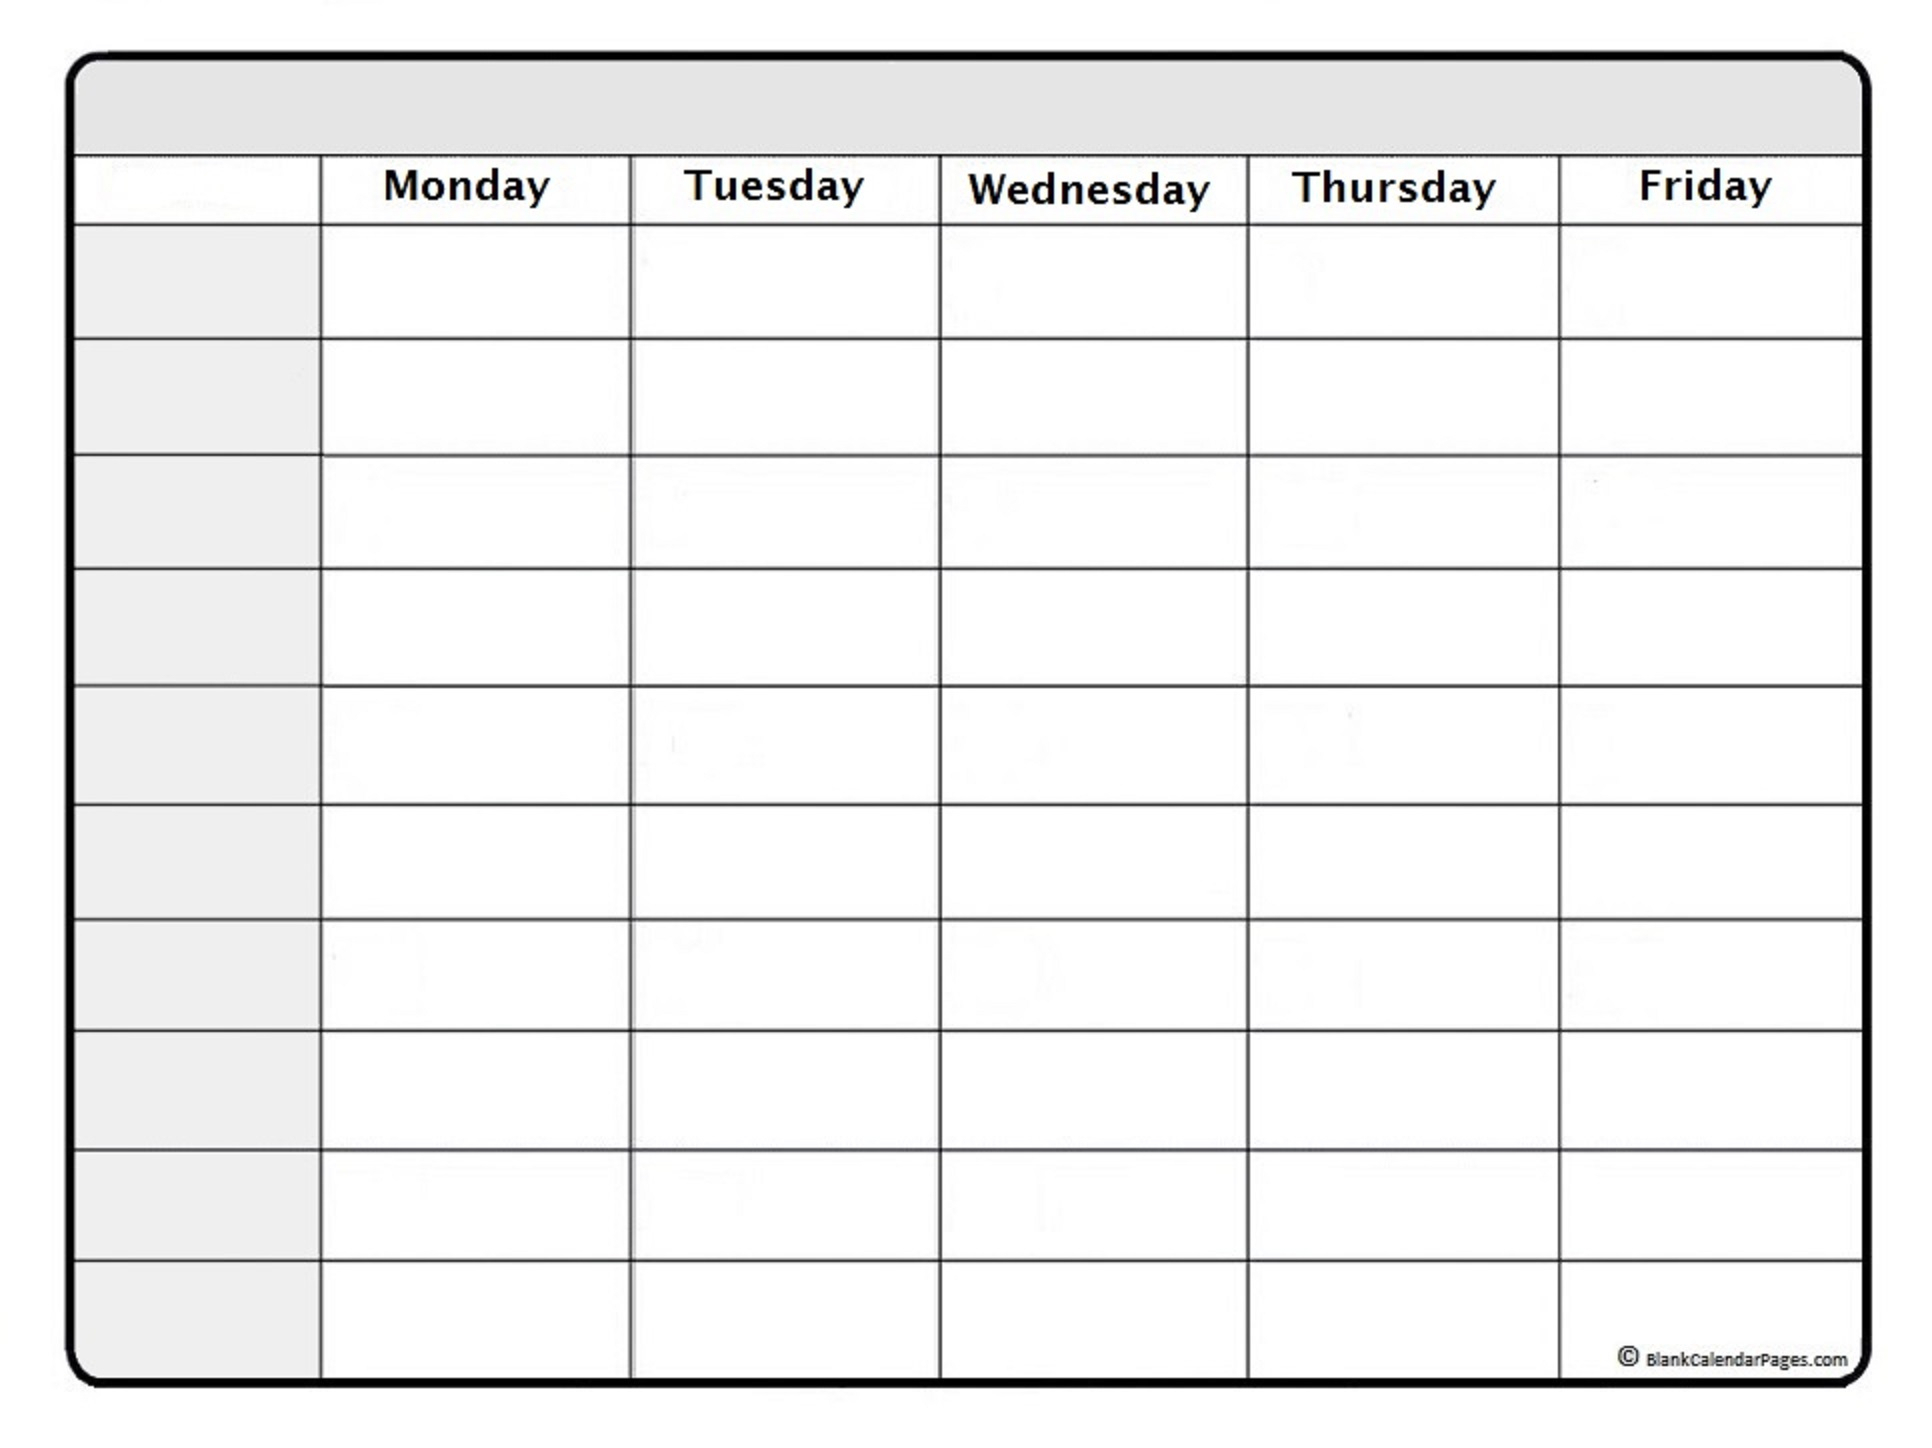 Blank Weekly Calendar Template March Pdf Editable For Mac | Smorad with regard to Editable Weekly Calendar Template